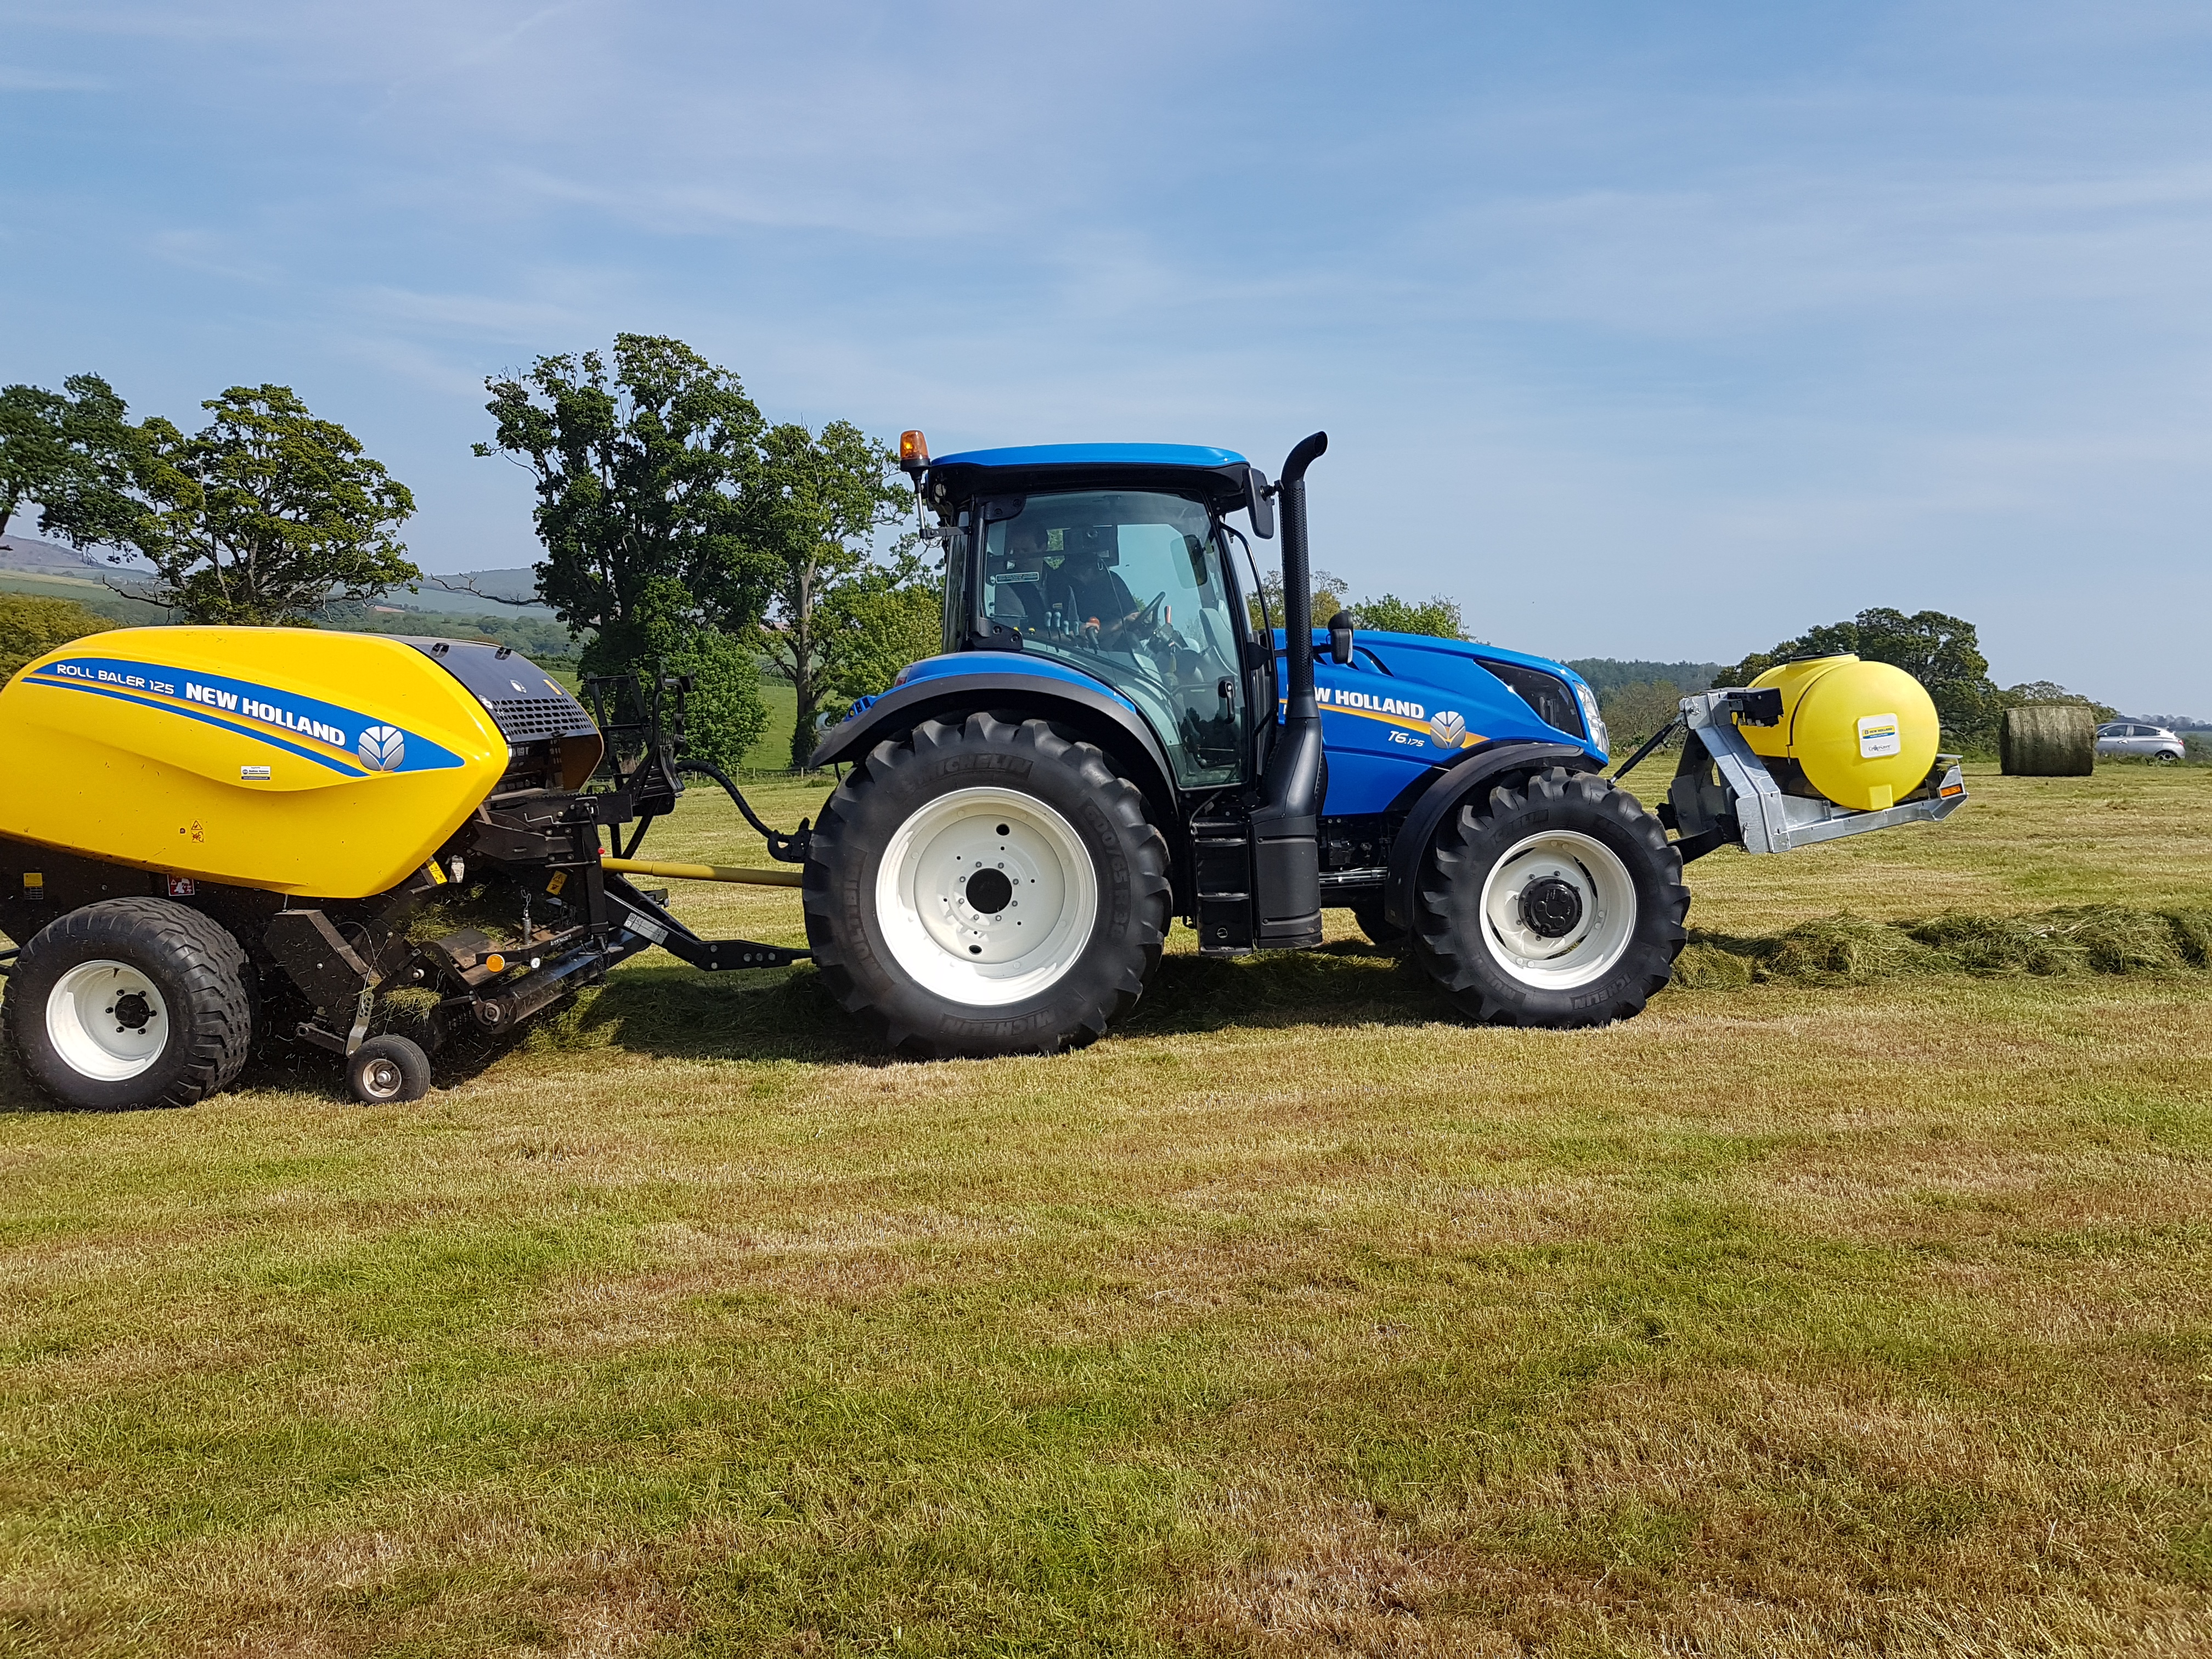 NH round baler with a CropSaver front linkage applicator